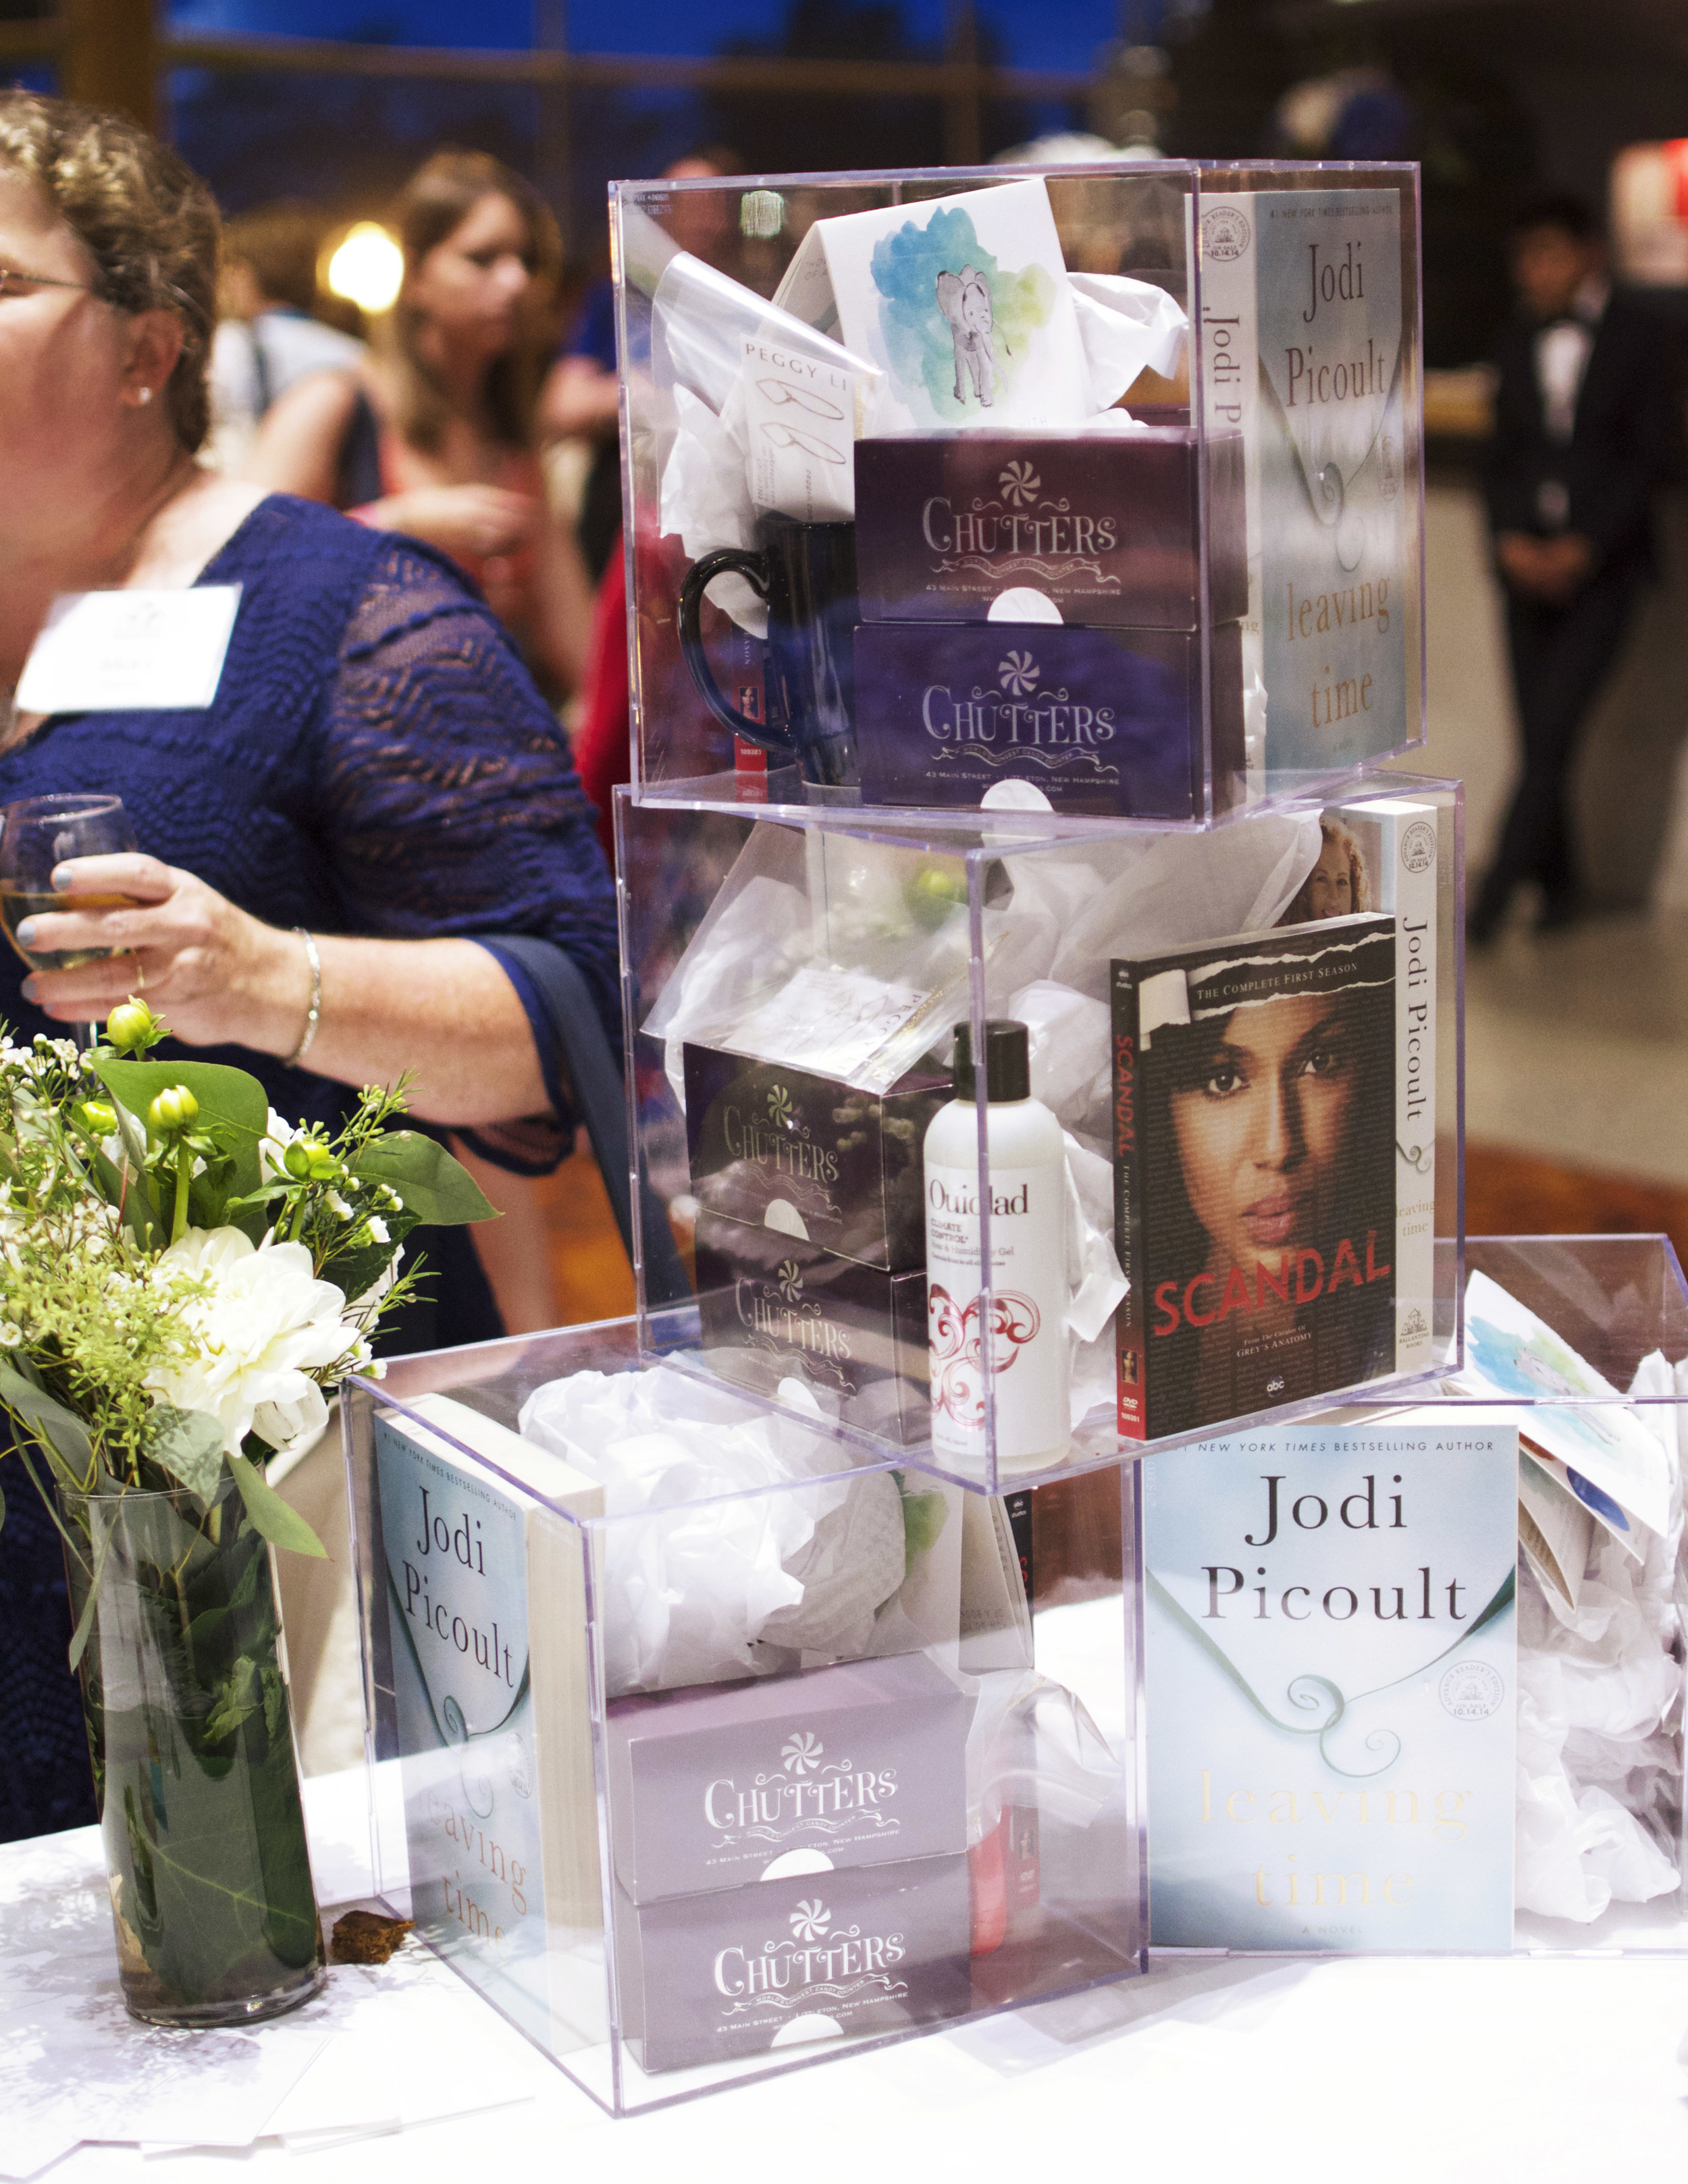 AnEveningWithJodiPicoult15